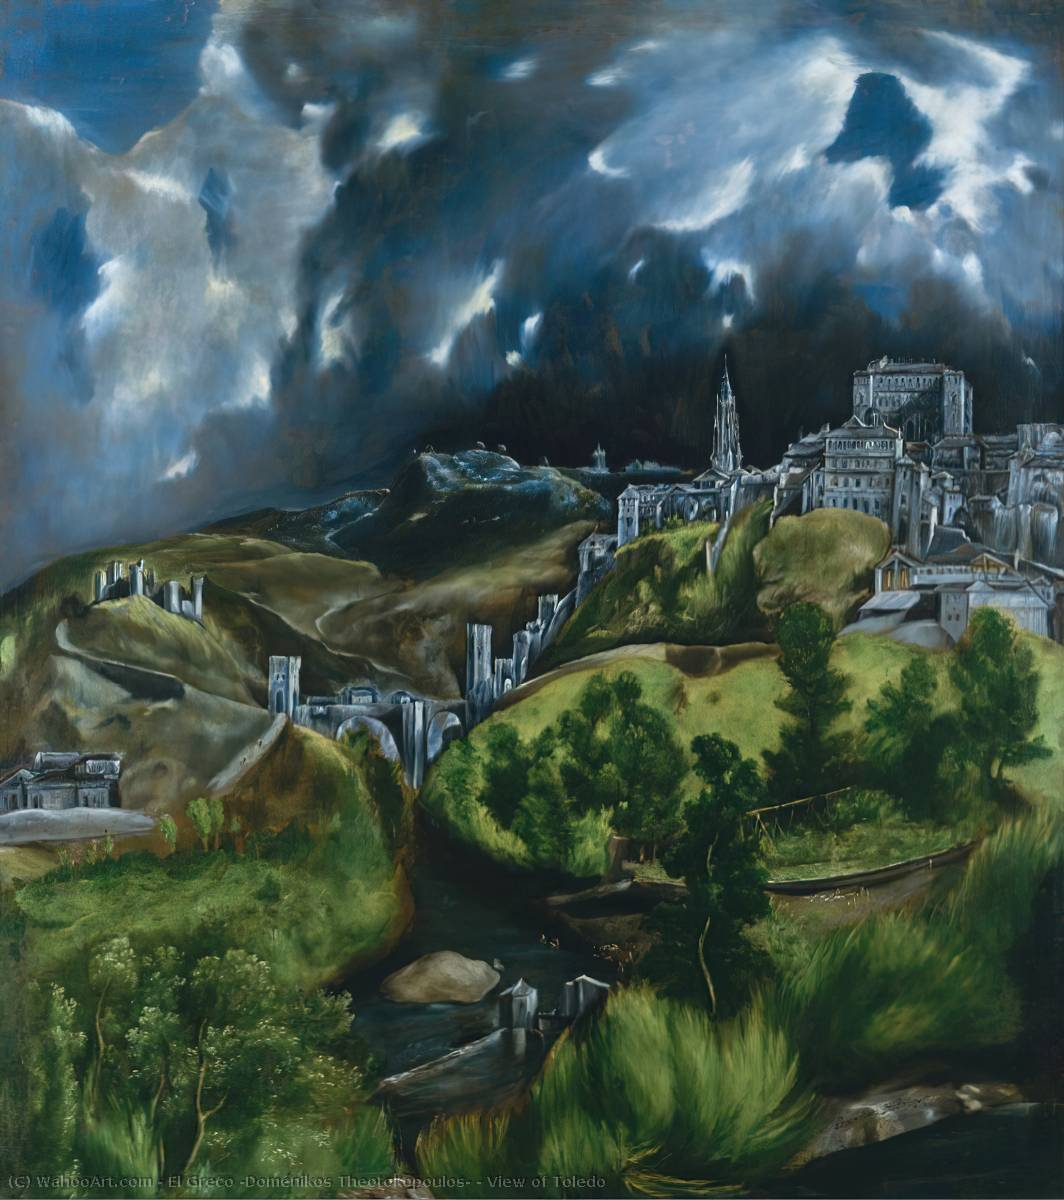 Order Paintings Reproductions | View of Toledo by El Greco (Doménikos Theotokopoulos) | Most-Famous-Paintings.com